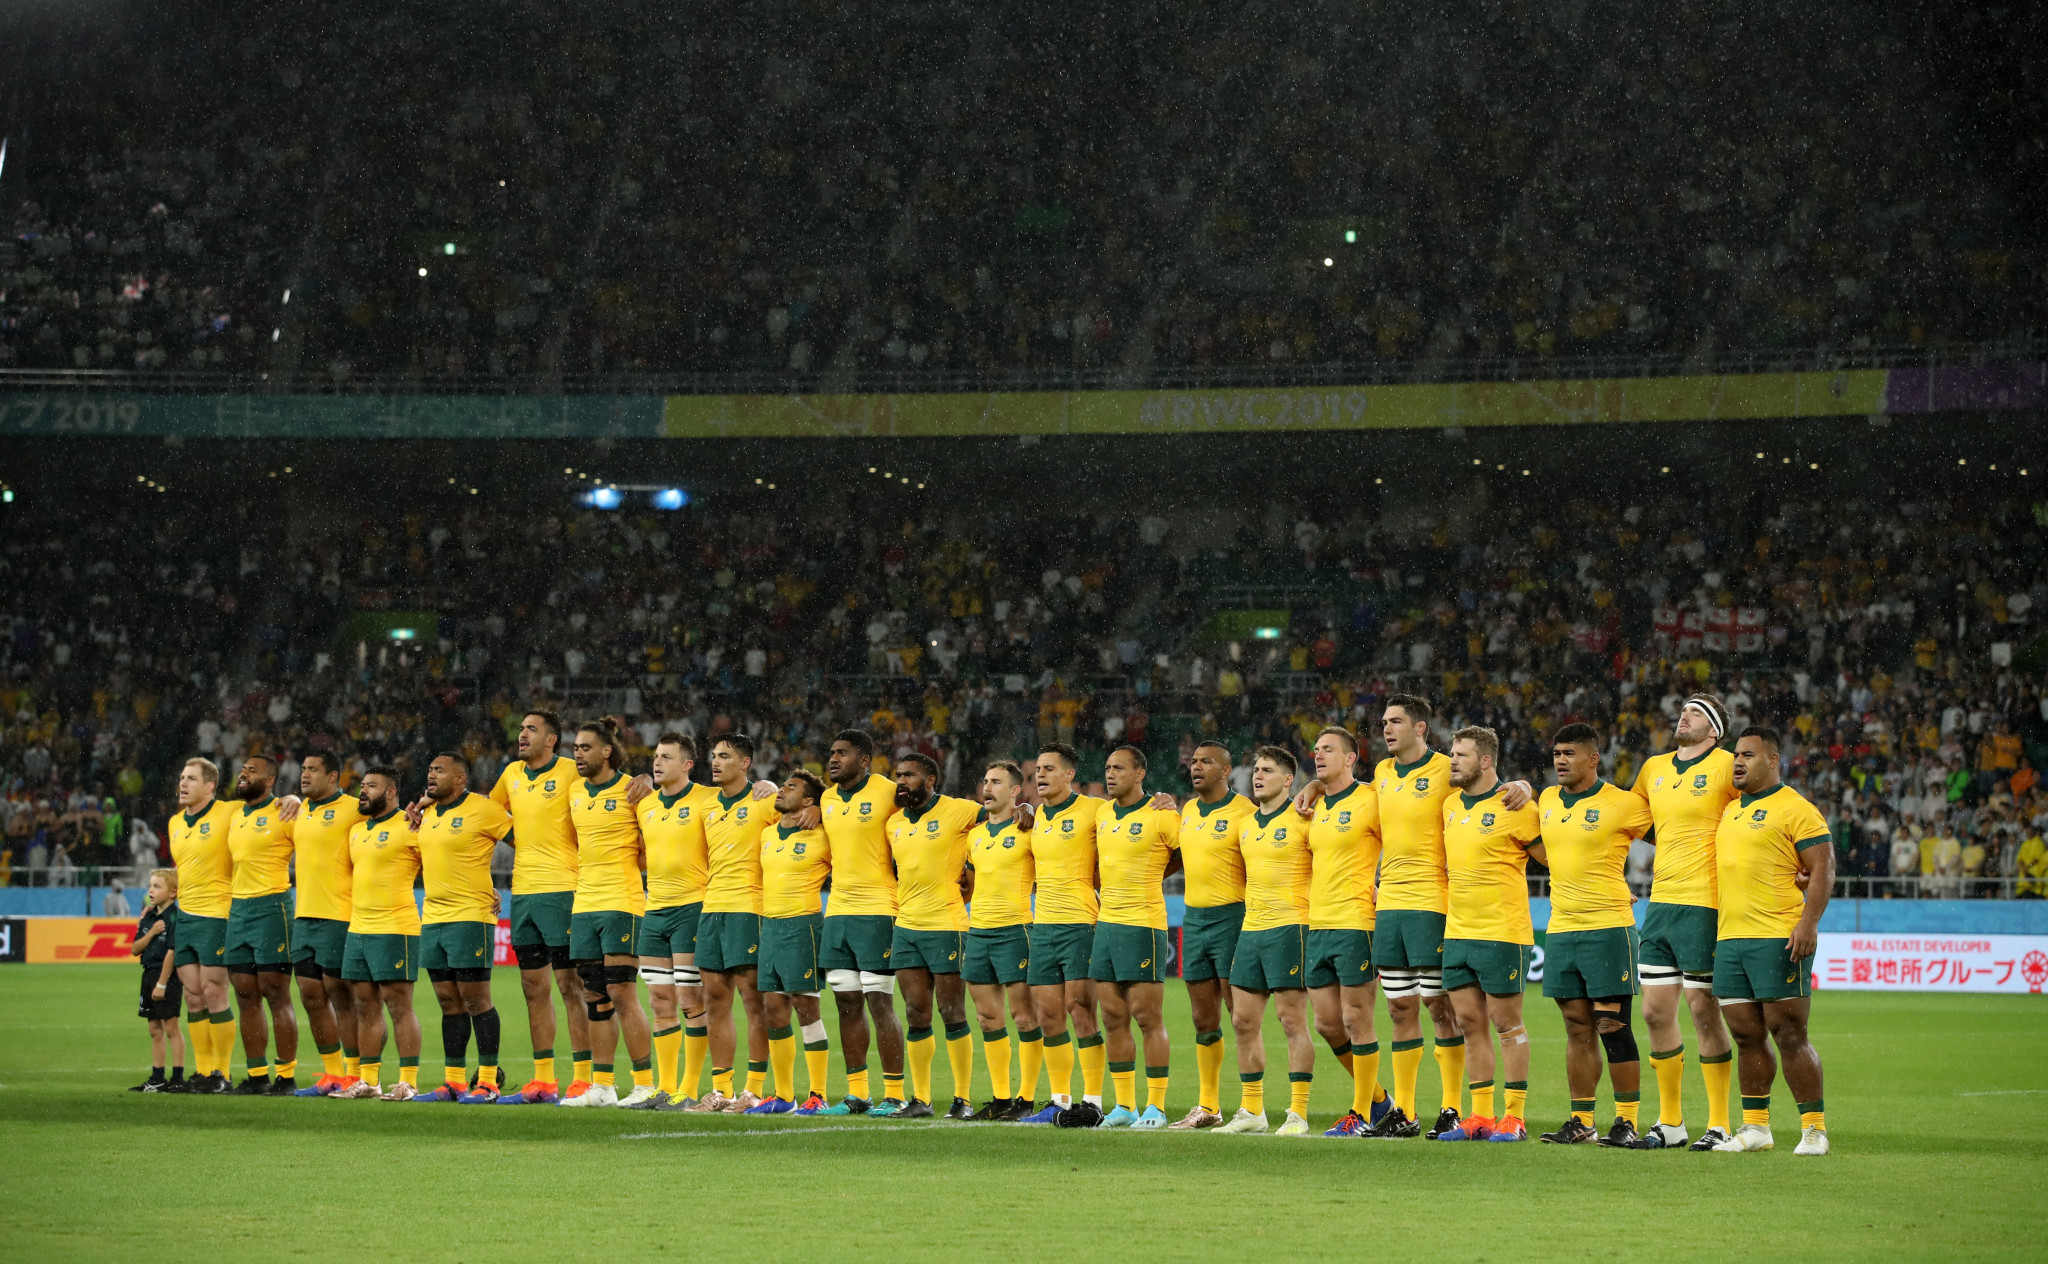 RA receives $9m lifeline from World Rugby